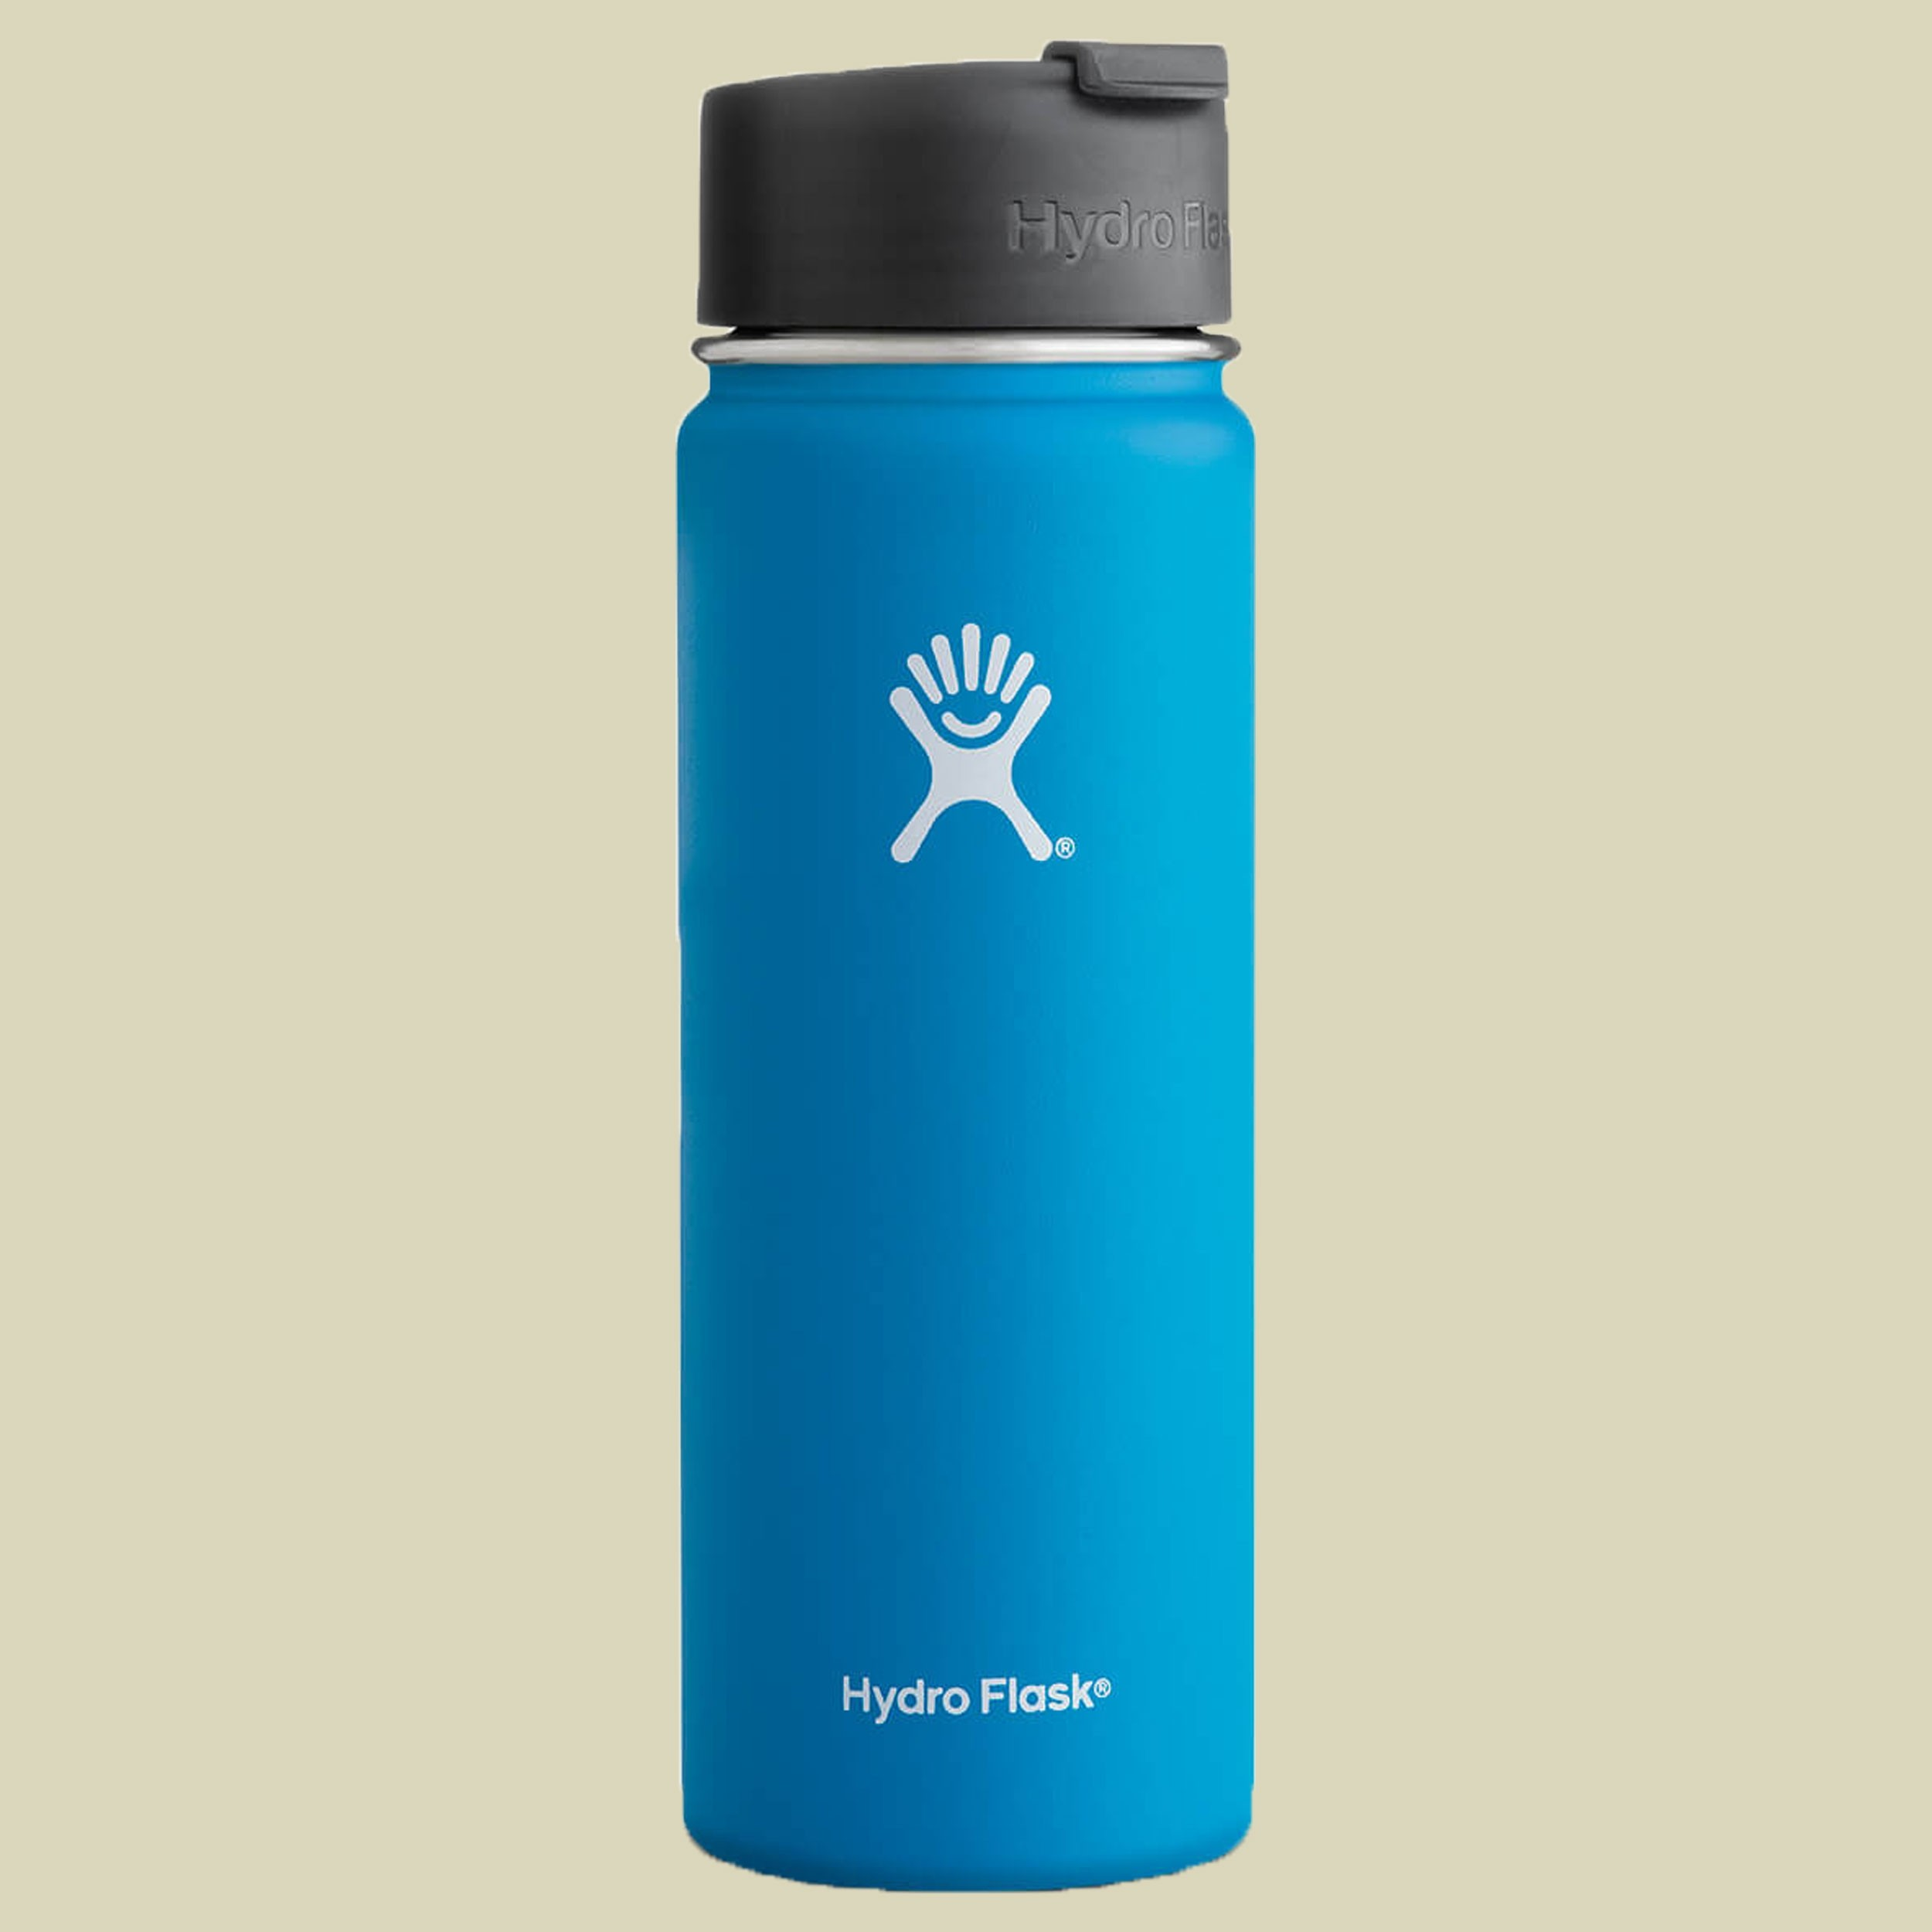 Hydro Flask 16 oz Wide Mouth with Flip Lid